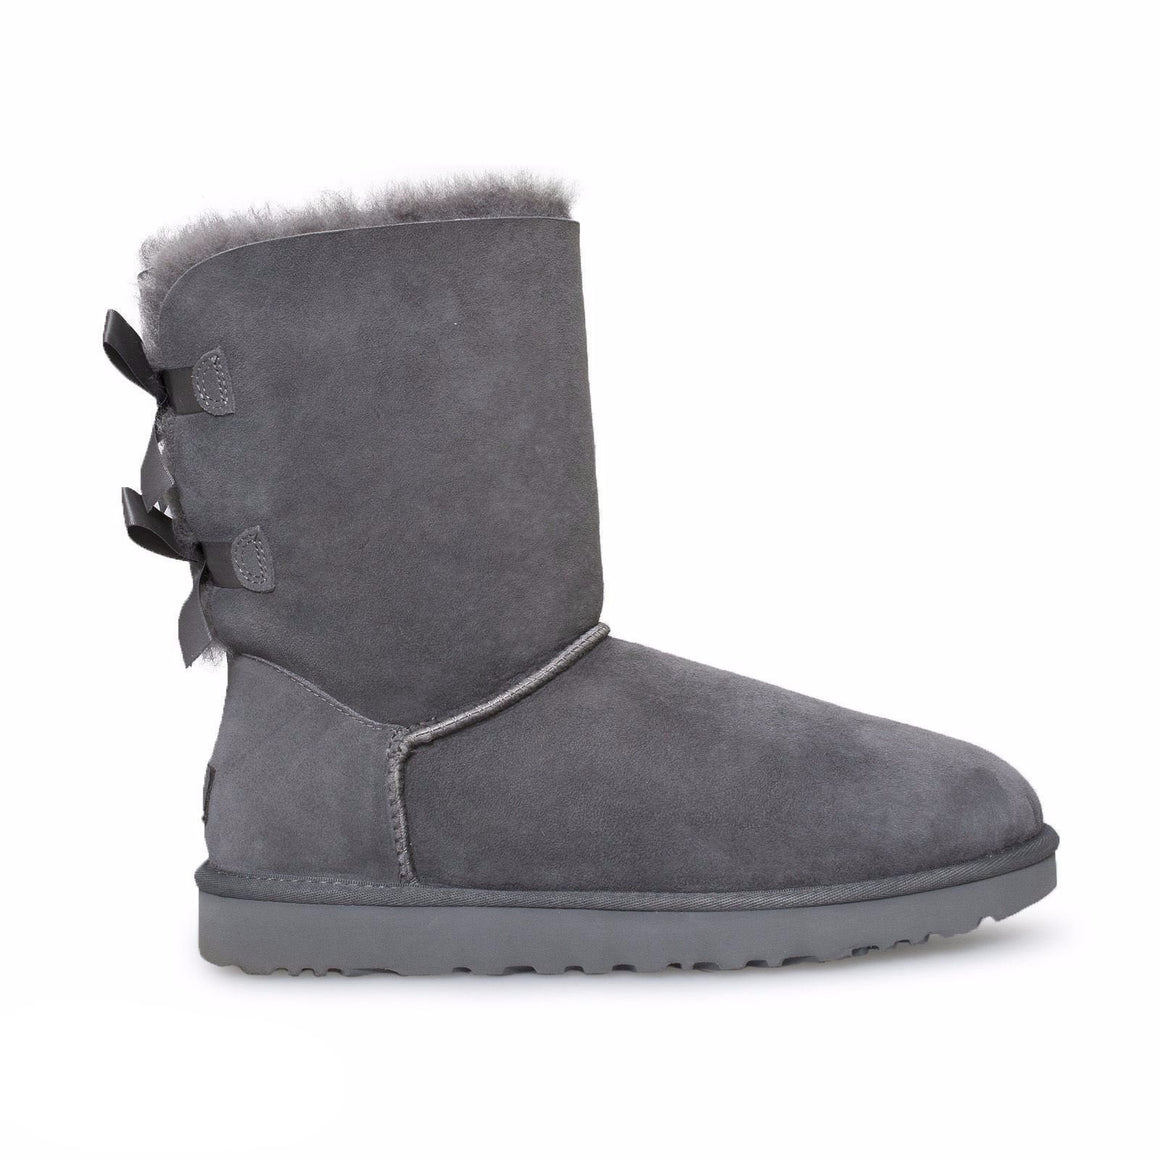 UGG Bailey Bow ii Grey Boots - Youth / Toddler